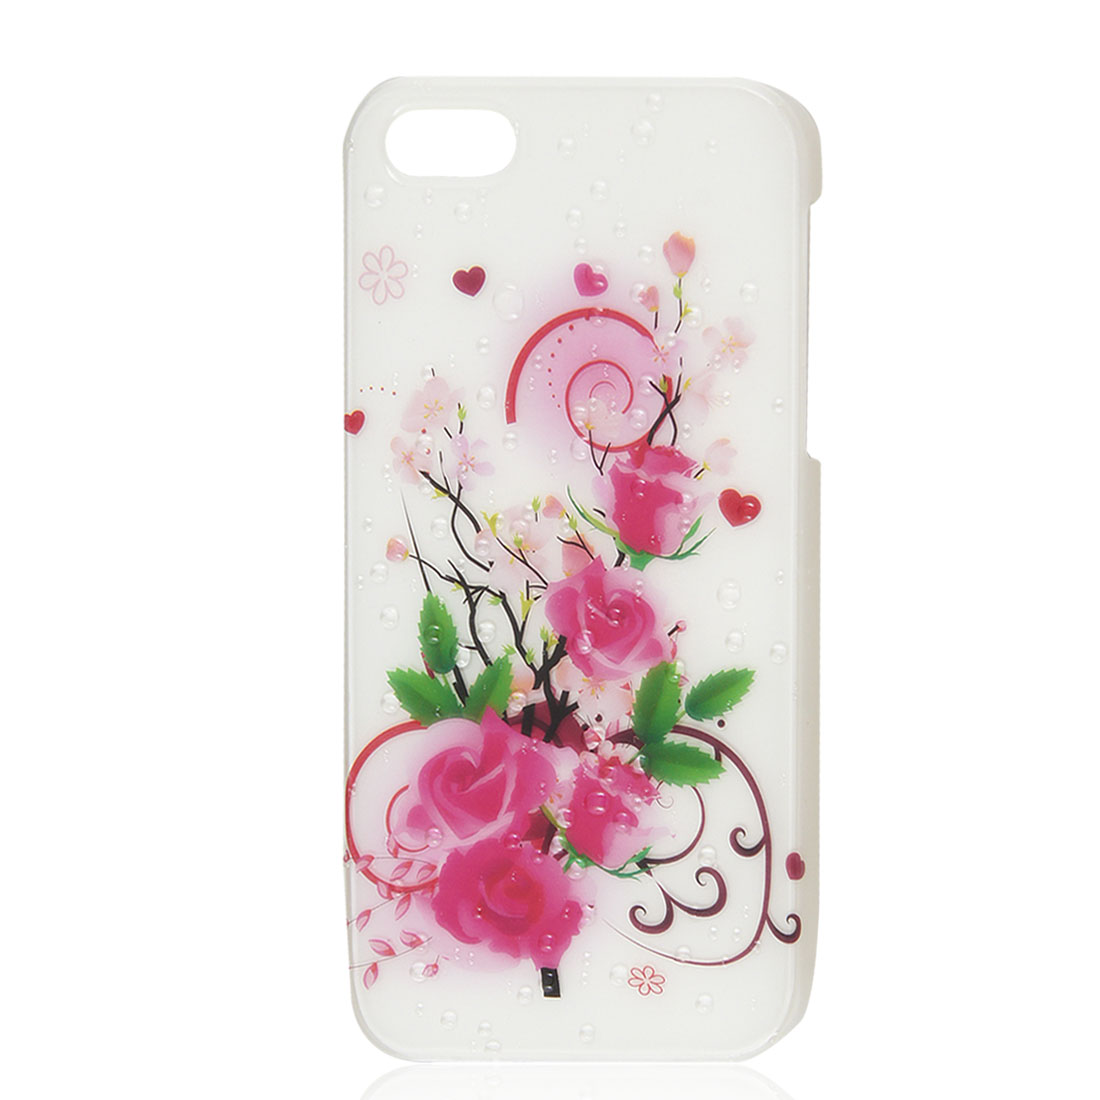 White China Floral Rose 3D Water Drop Hard Back Case Skin Cover for iPhone 5 5G